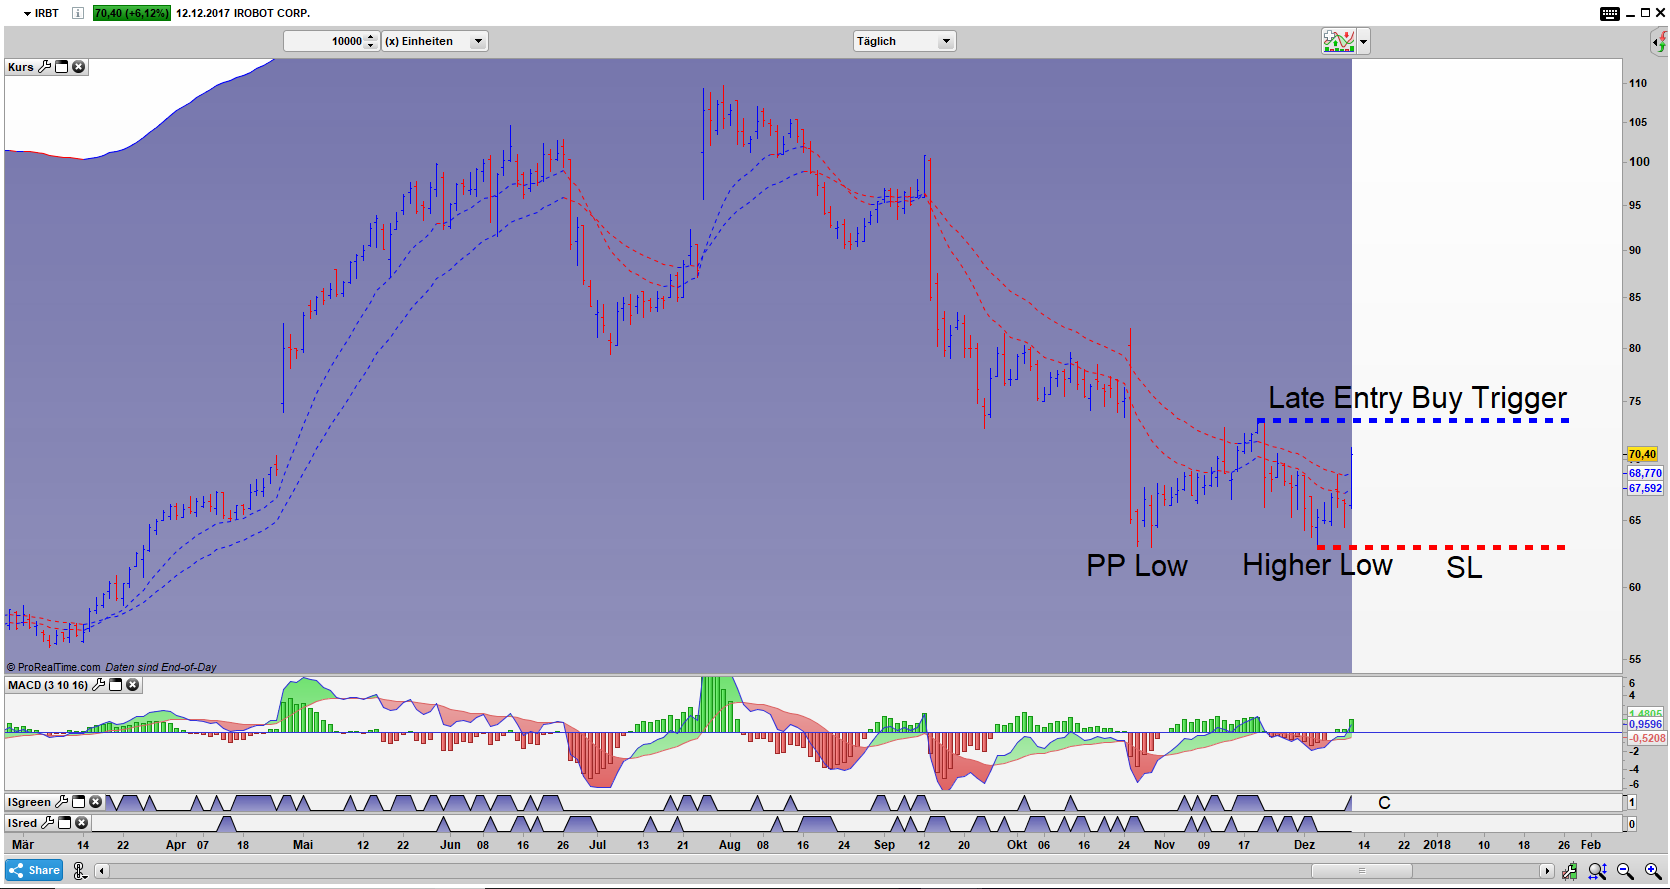 IRBT Bar Tages Chart: PP Low Higher Low Setup aktiv!